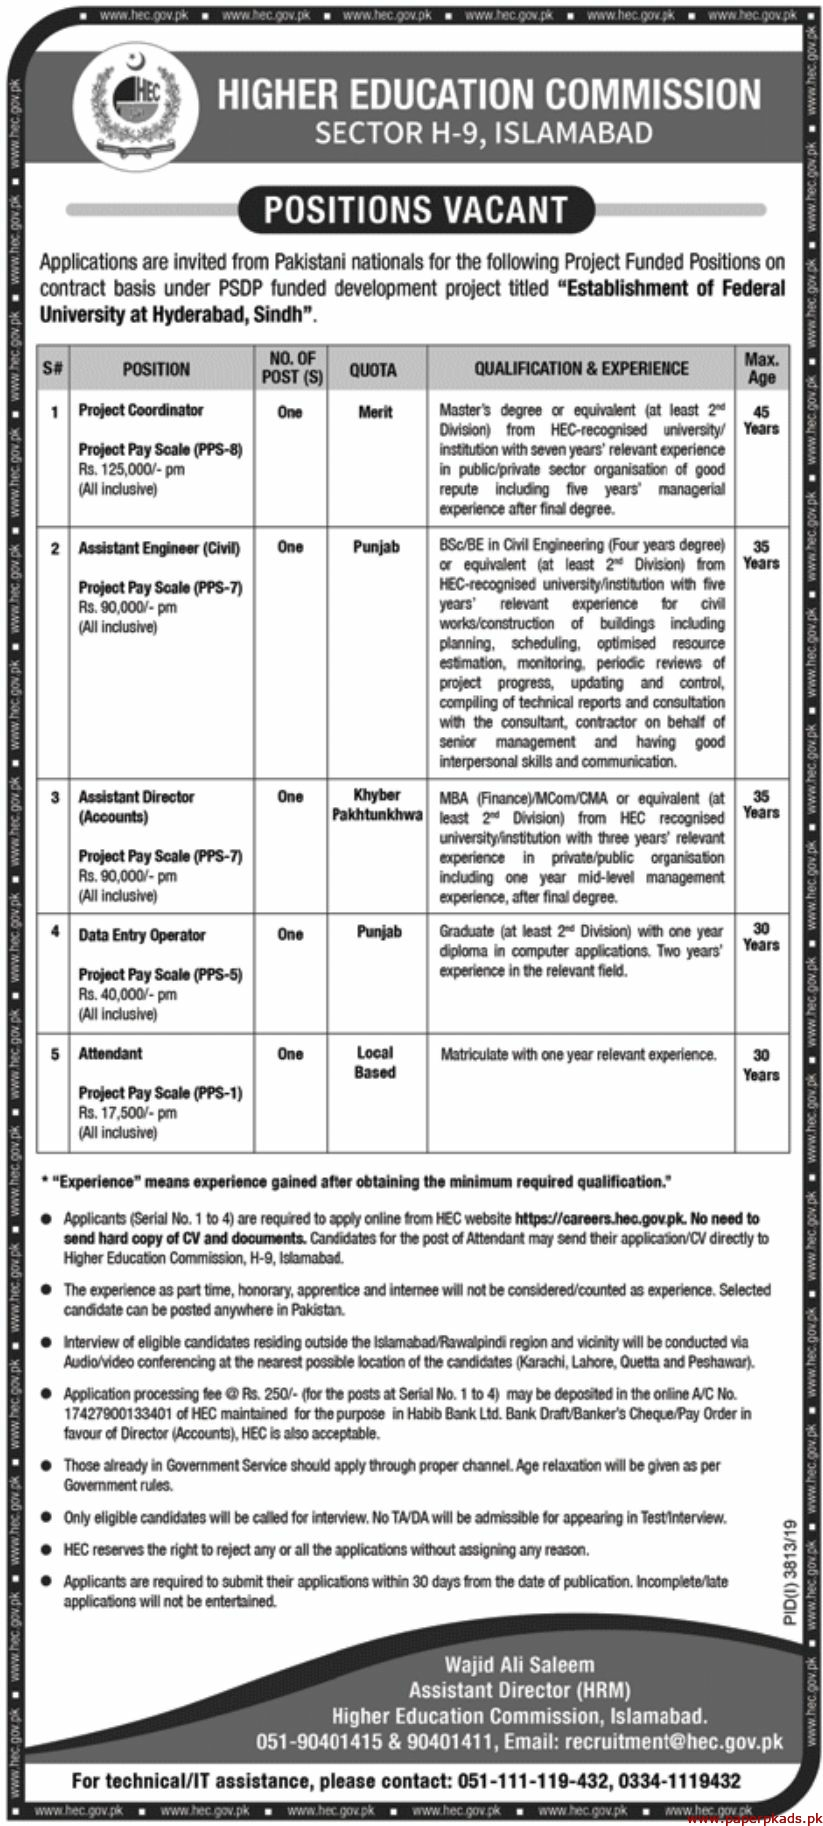 Higher Education Commission Islamabad Jobs 2020 Latest